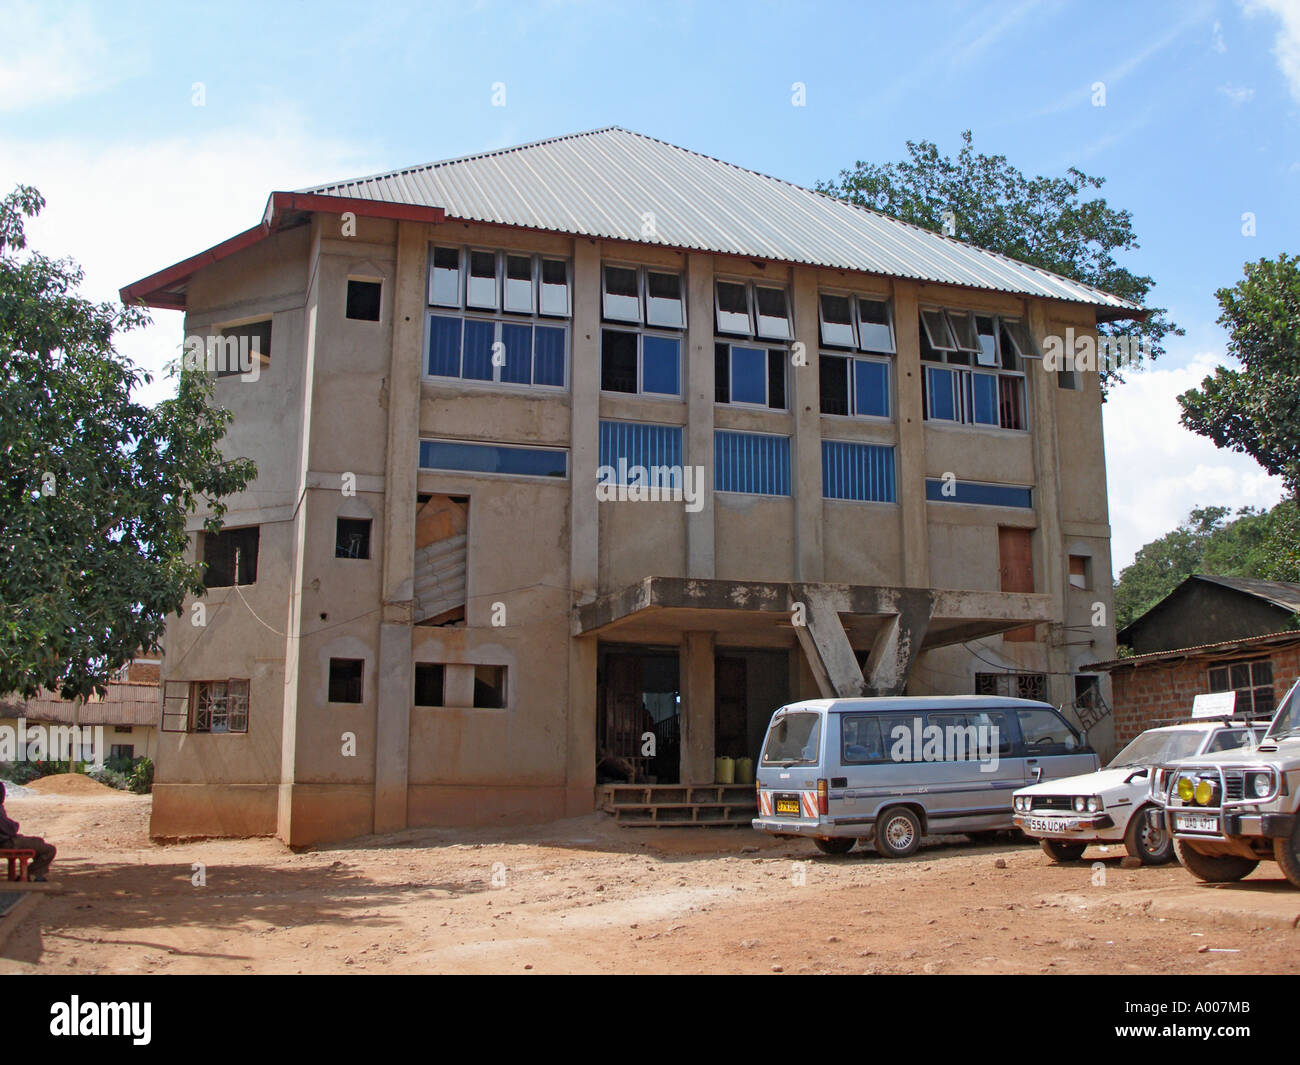 The Redeemed of the Lord Evangelistic Church, Kampala, Uganda - Stock Image